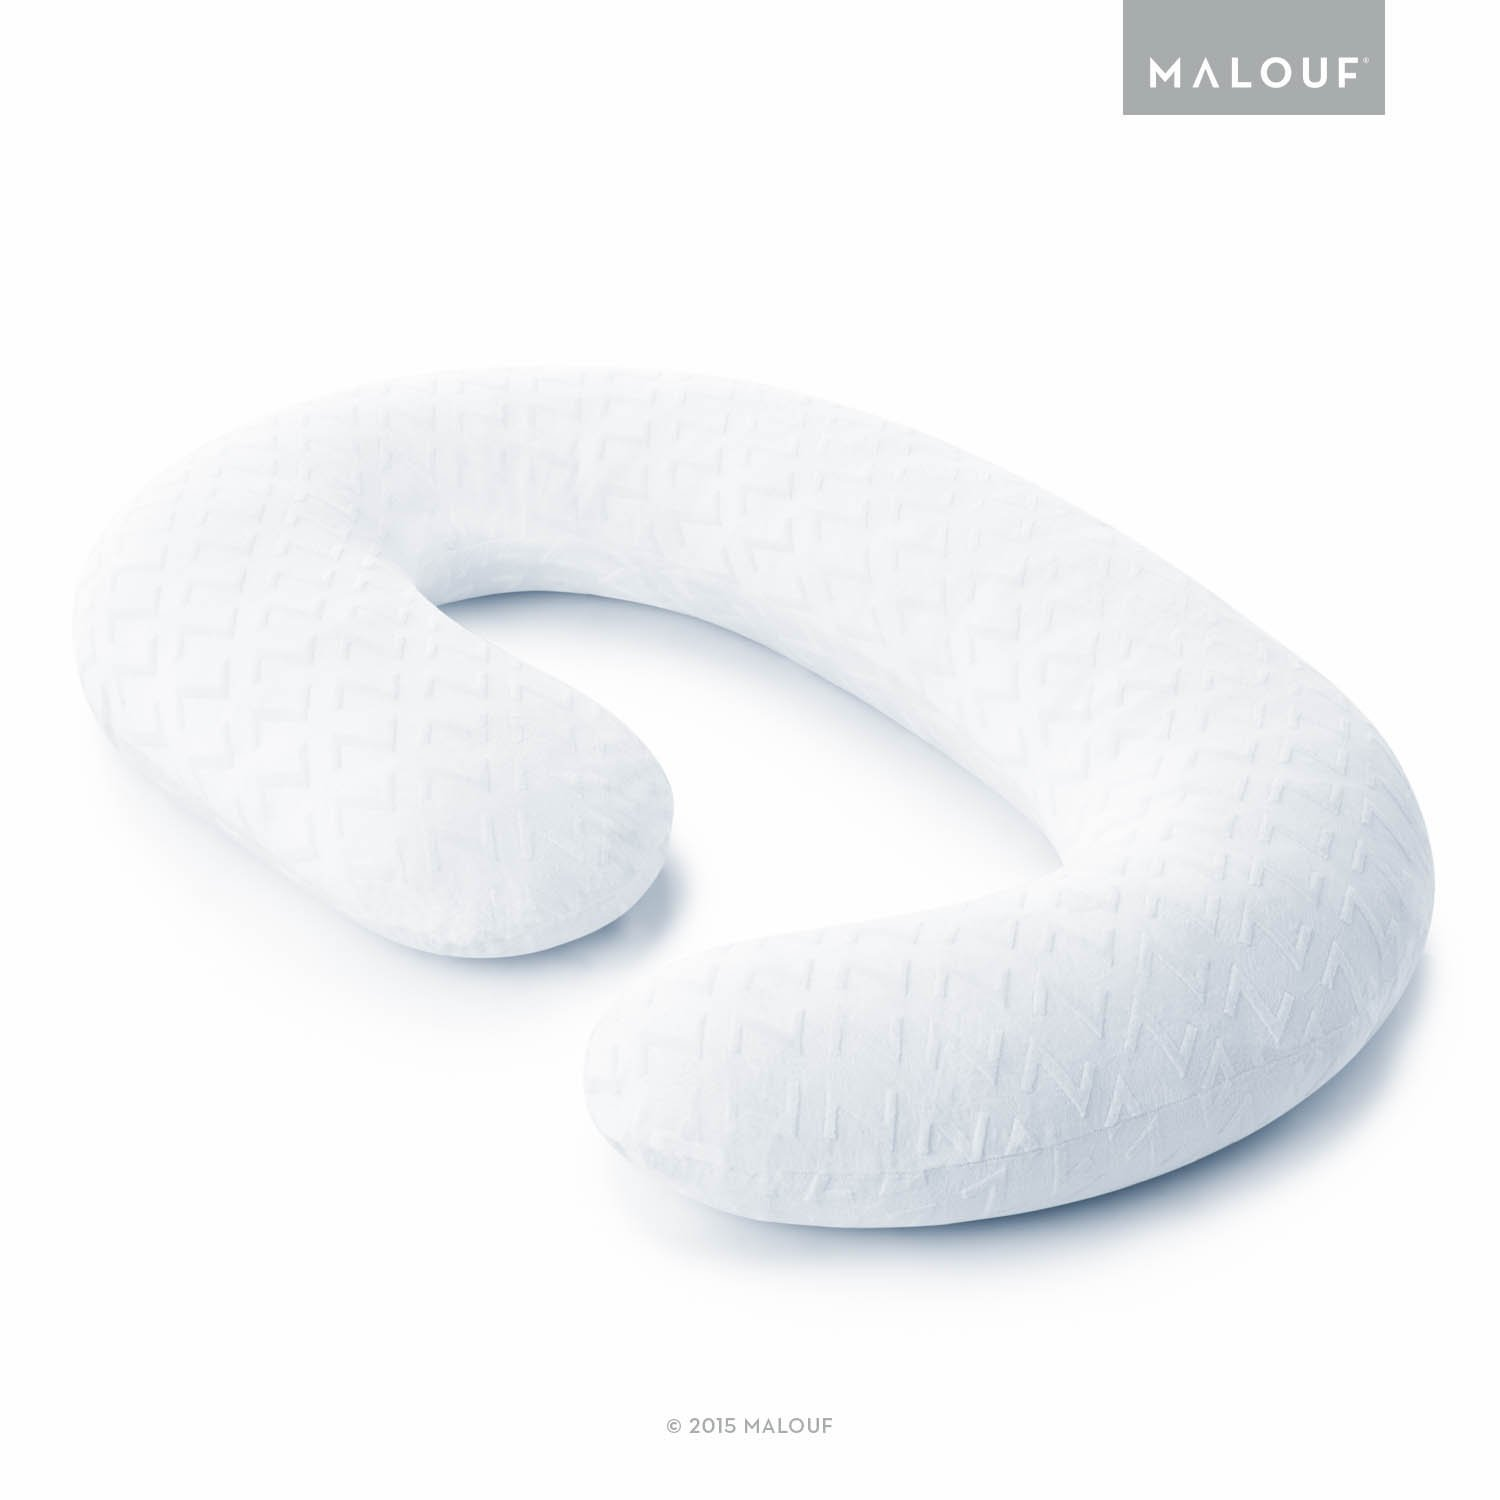 MALOUF Z Total Body C-Shape Pregnancy Pillow - Wrap Around Ultra Supportive Sleeping Pillow ZZPJHFGM